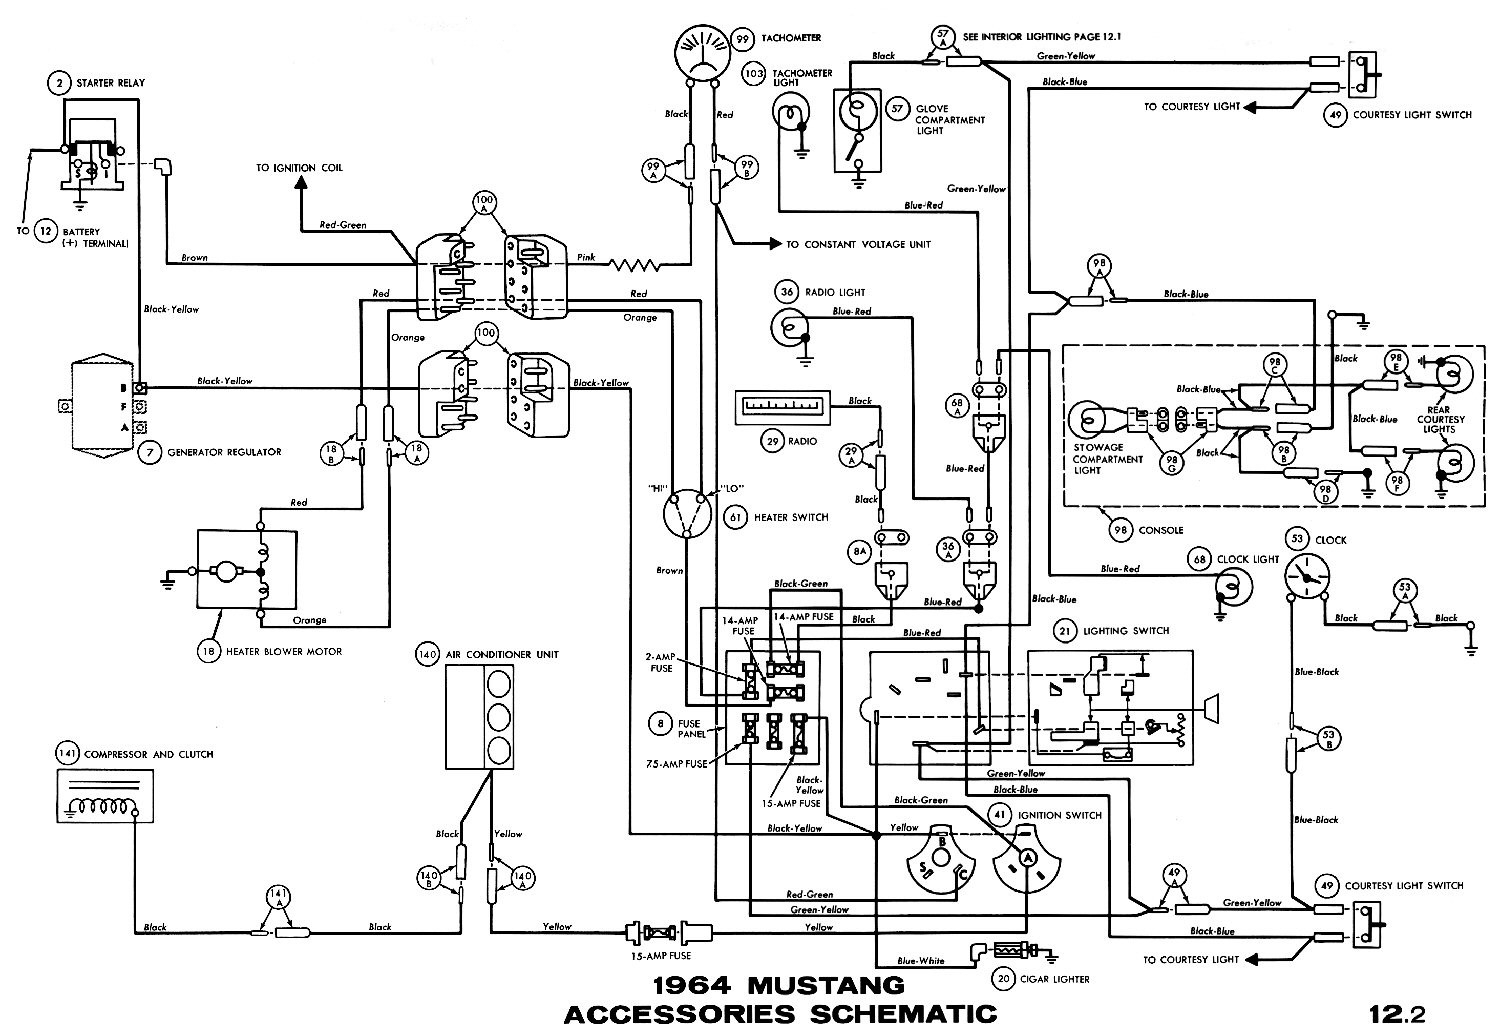 1971 Mustang Convertible Wiring Diagram Great Installation Of 66 Harness 2000 Fuse Library Rh 37 Budoshop4you De 1966 289 Engine